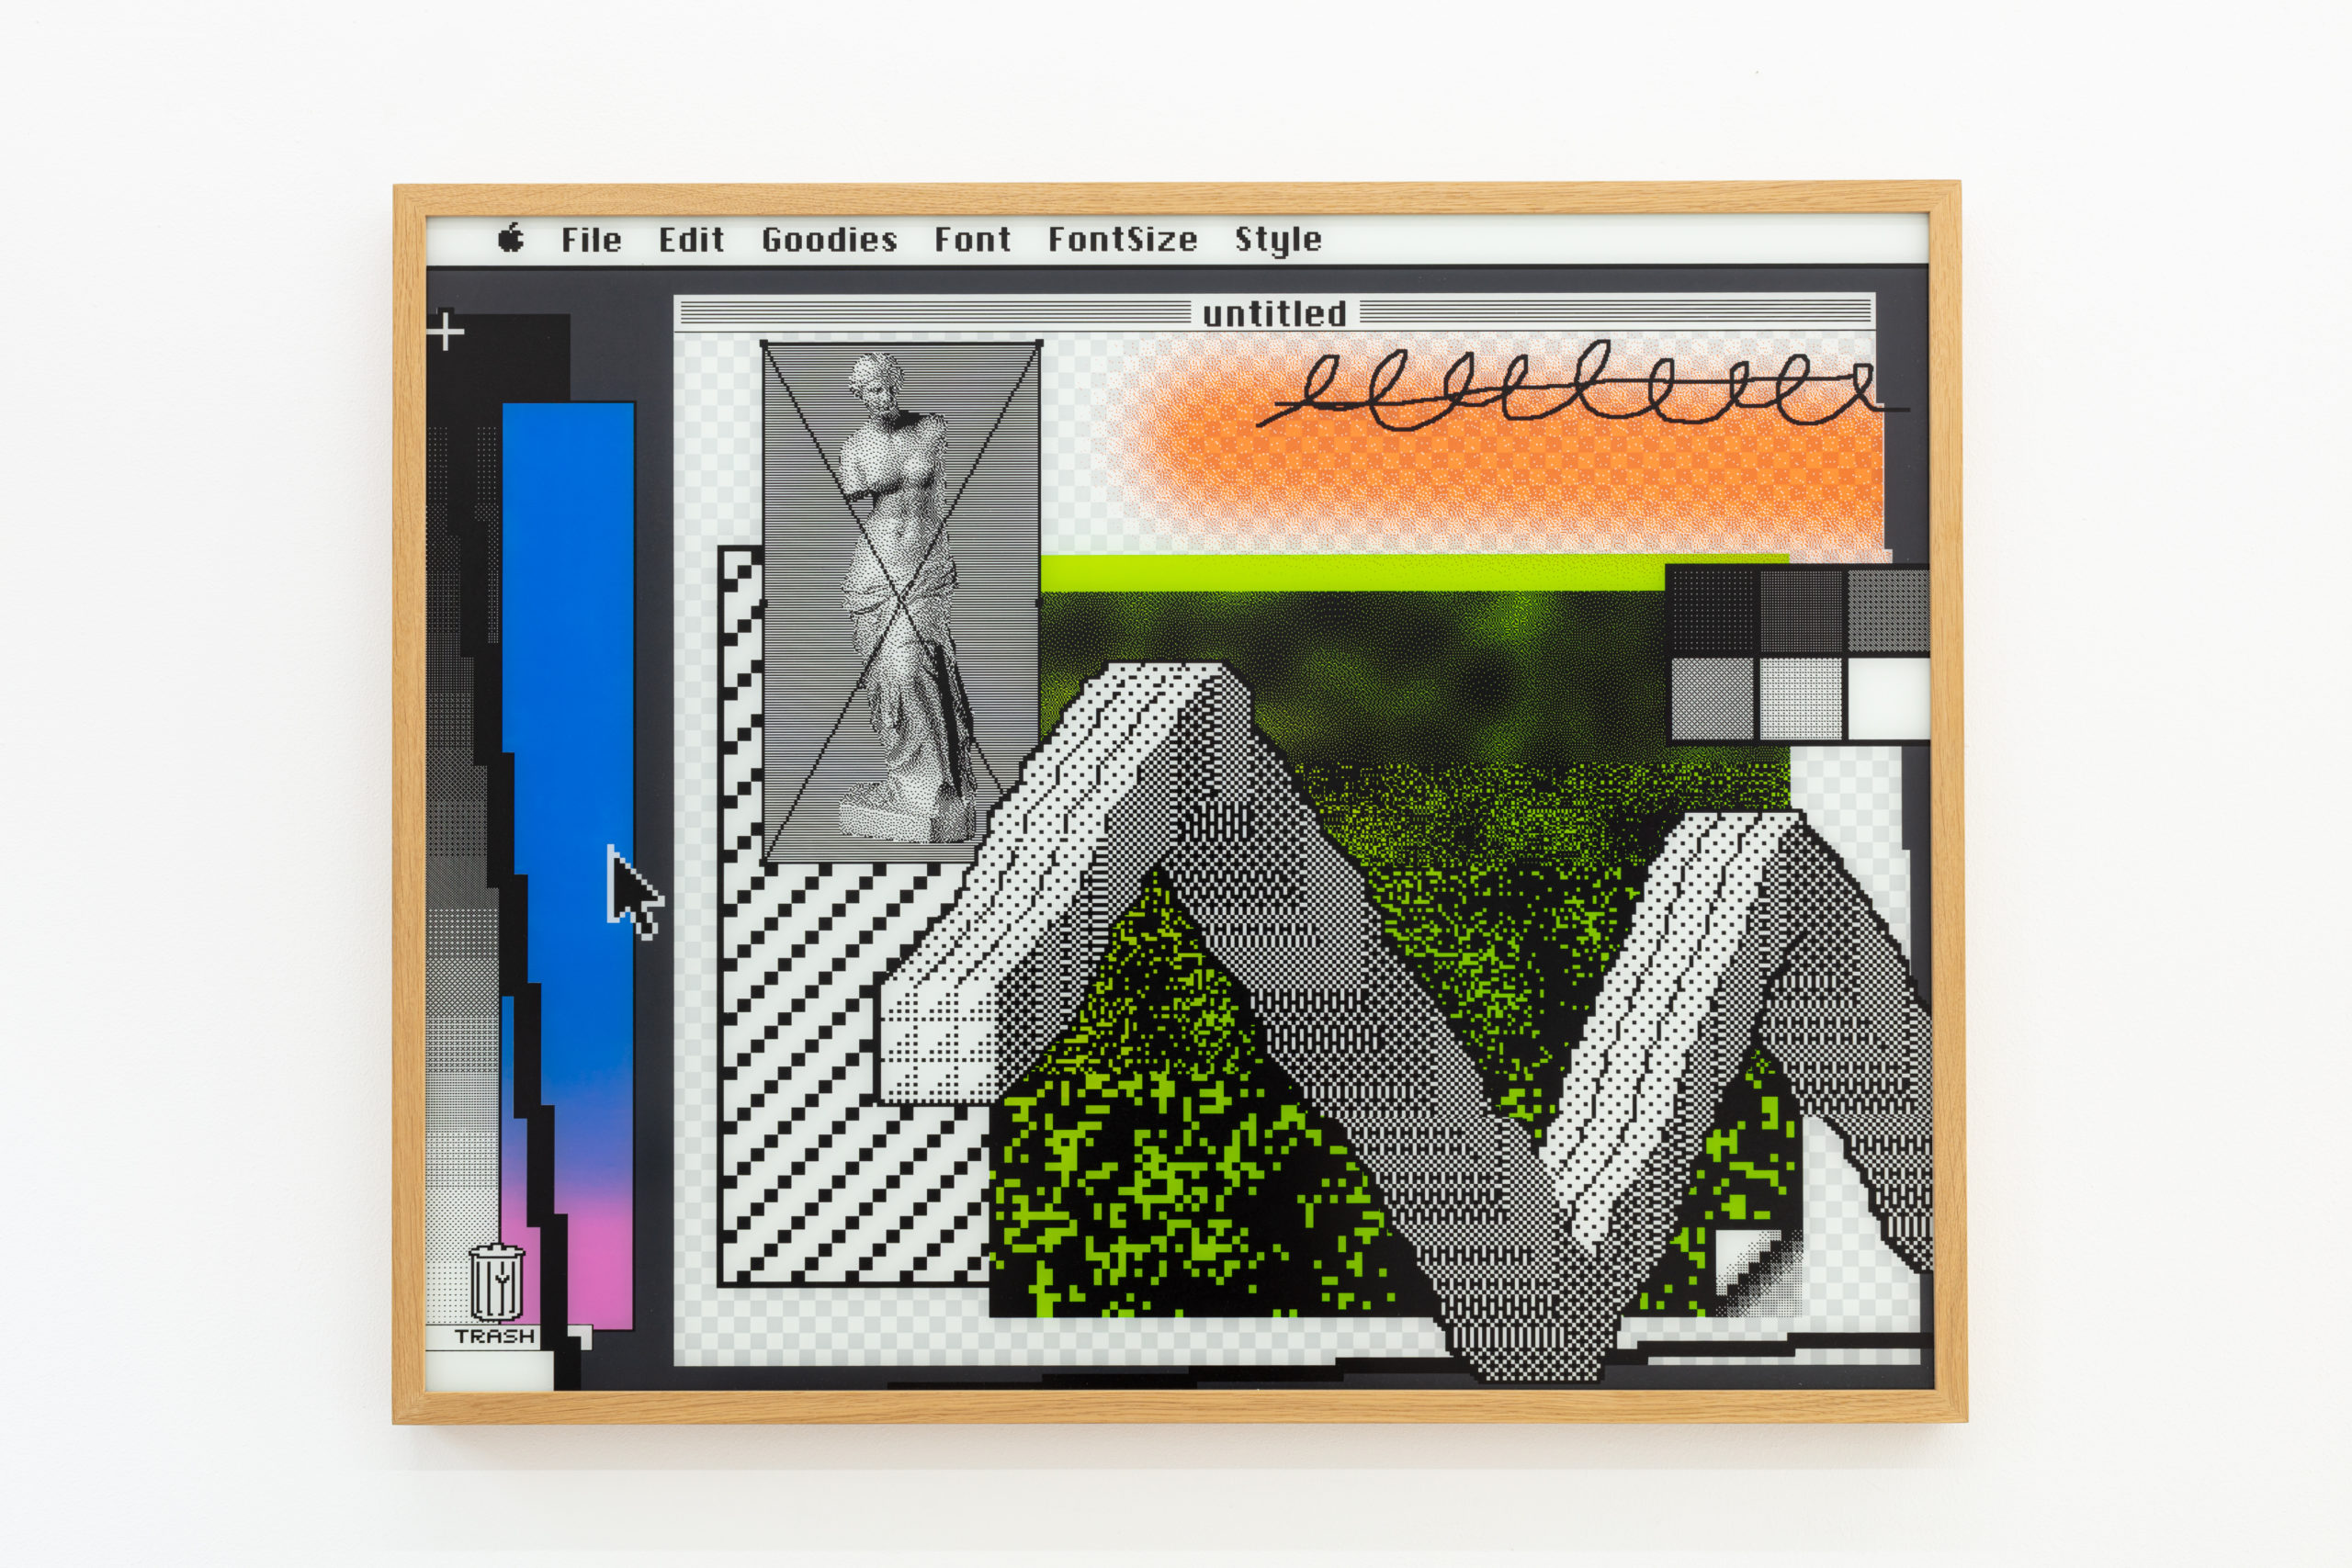 Arno Beck, Windows 1, edition of 5, screenprint on glass, 75 x 96 cm, 2016